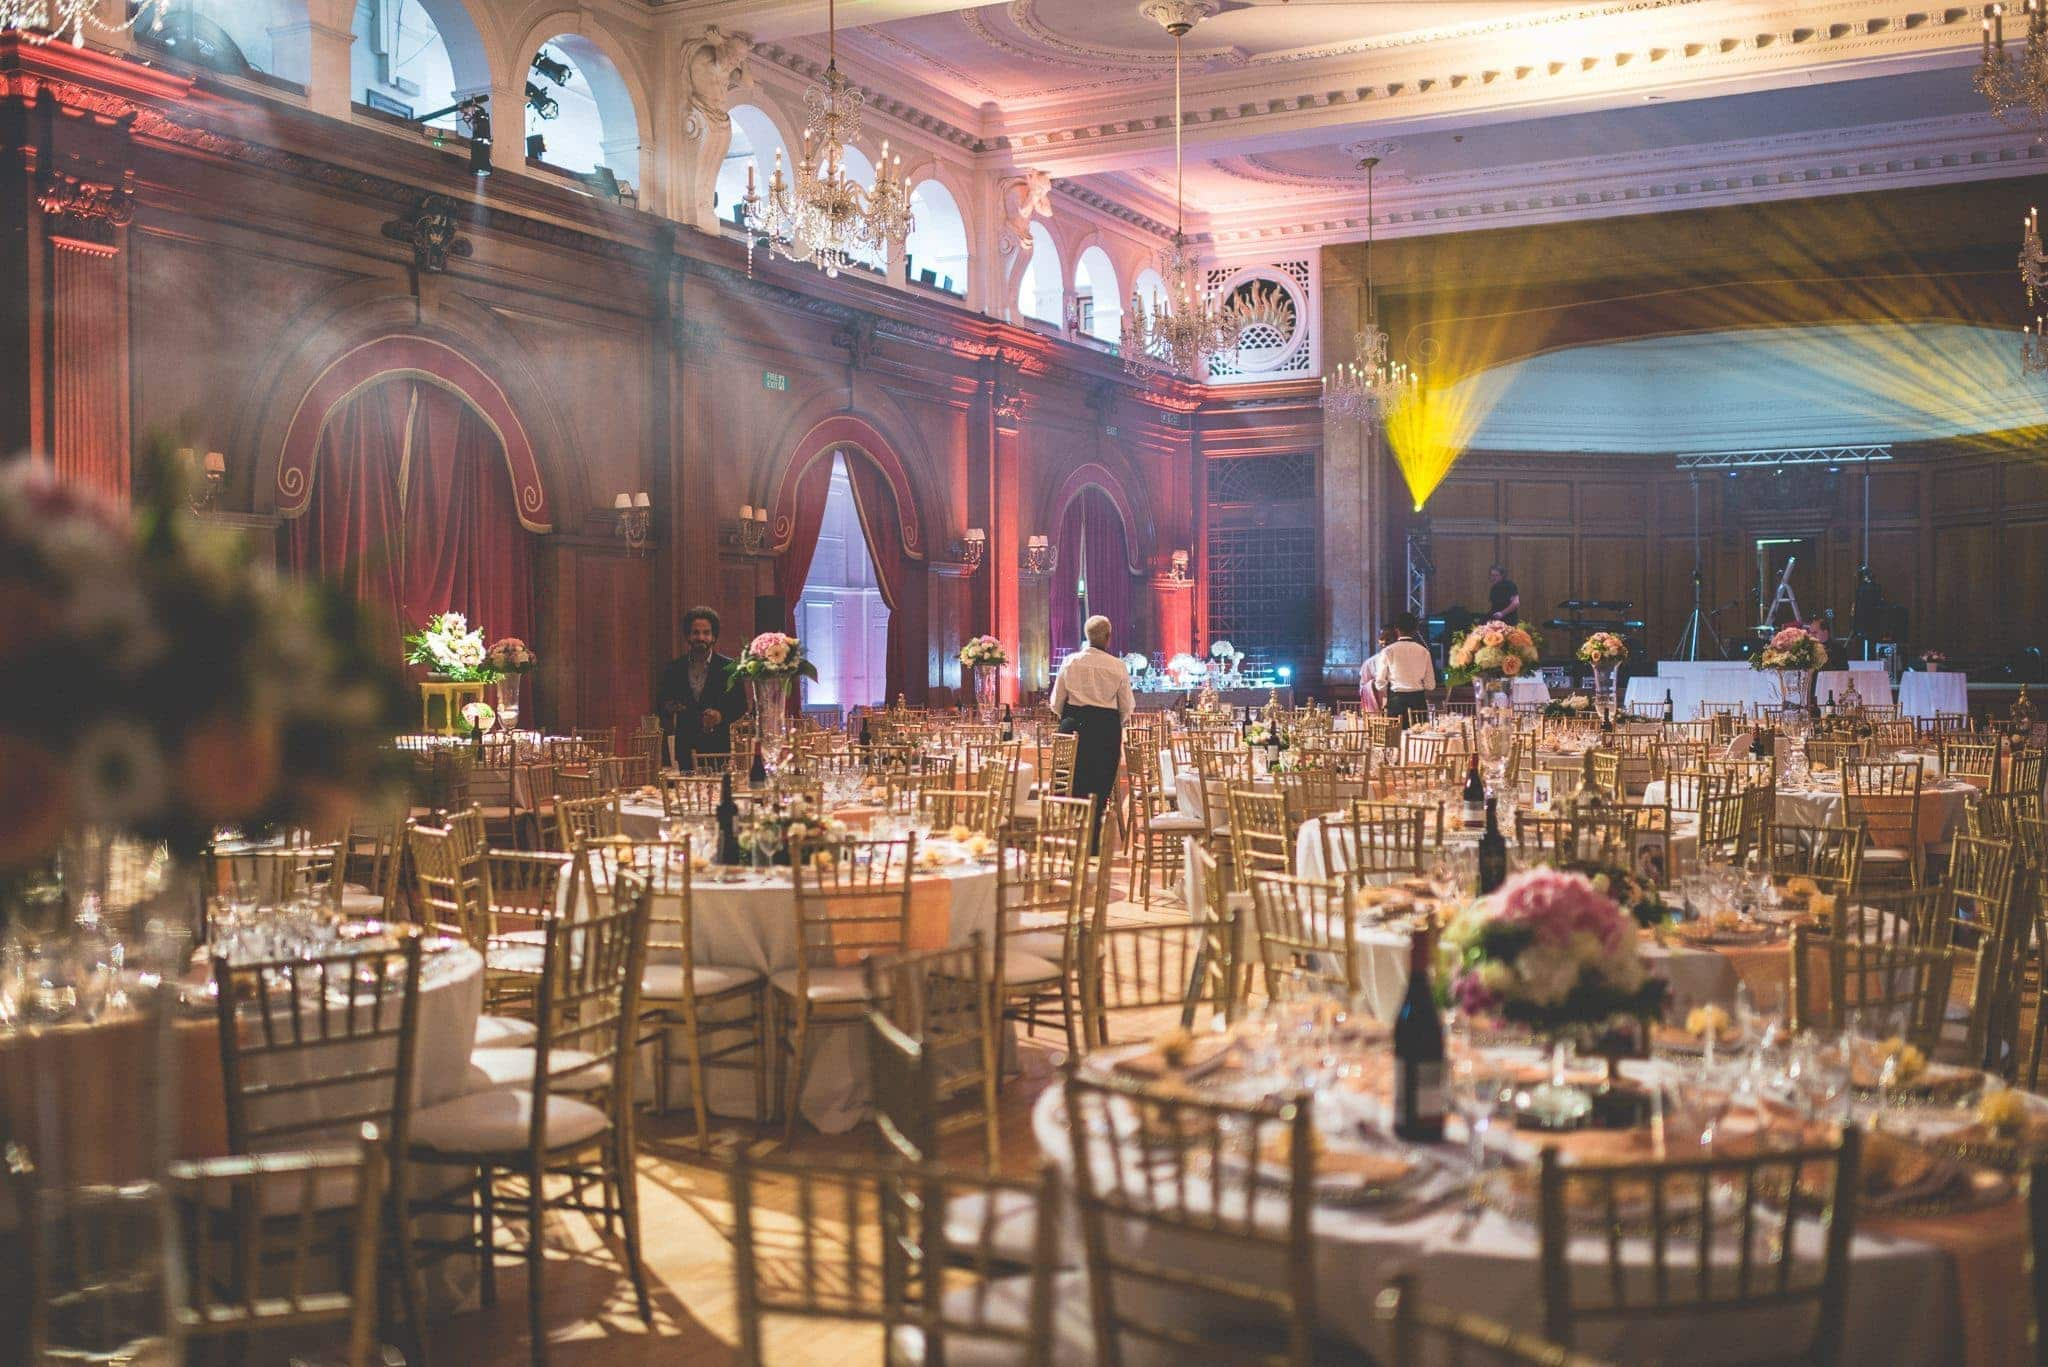 Porchester Hall dressed in a golden wedding theme